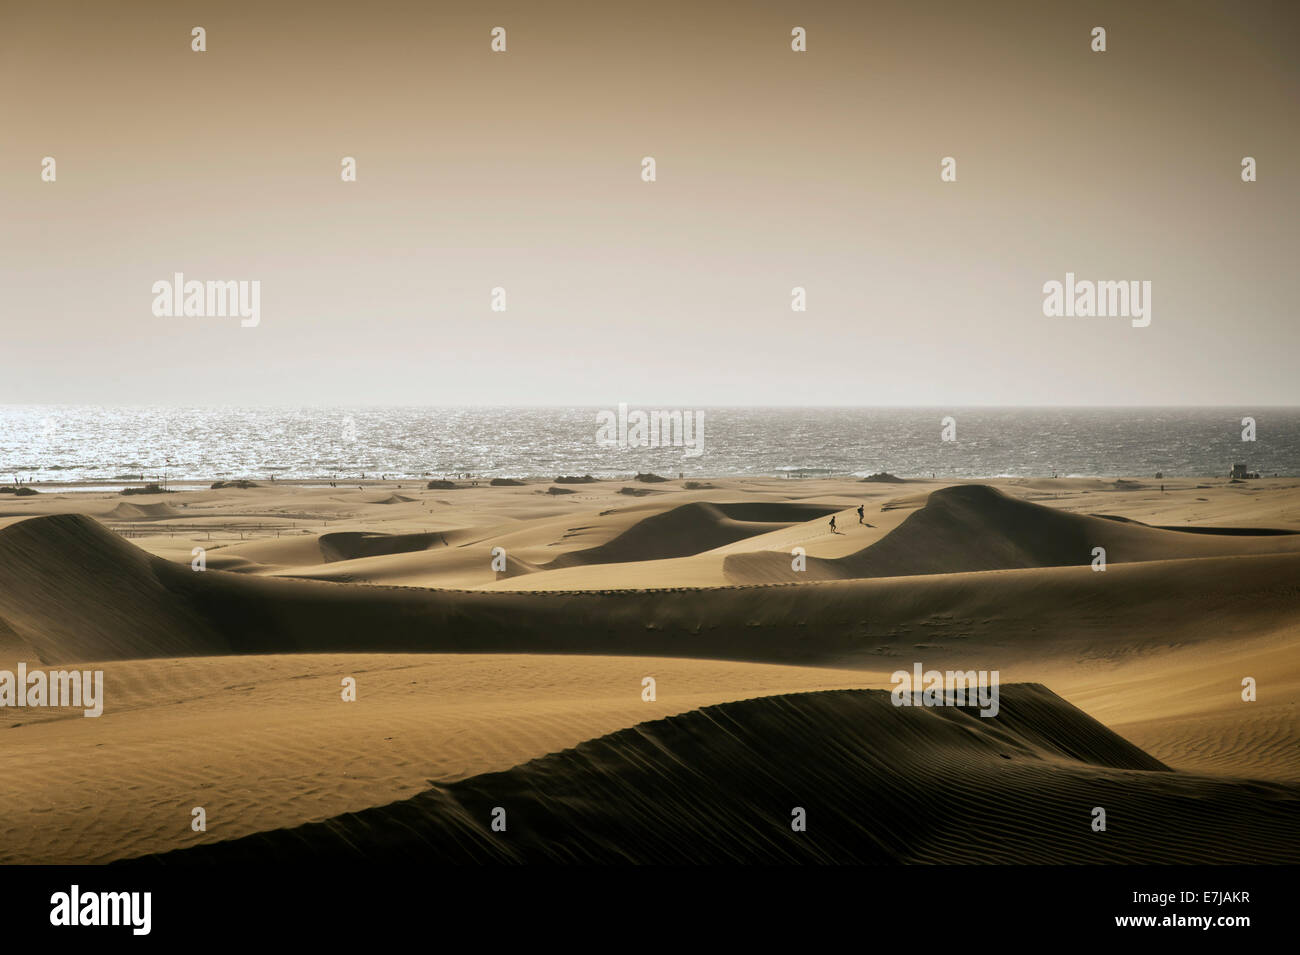 The Dunes of Maspalomas in the diffuse light of a sand storm, Playa del Ingles, Gran Canaria, Canary Islands, Spain - Stock Image